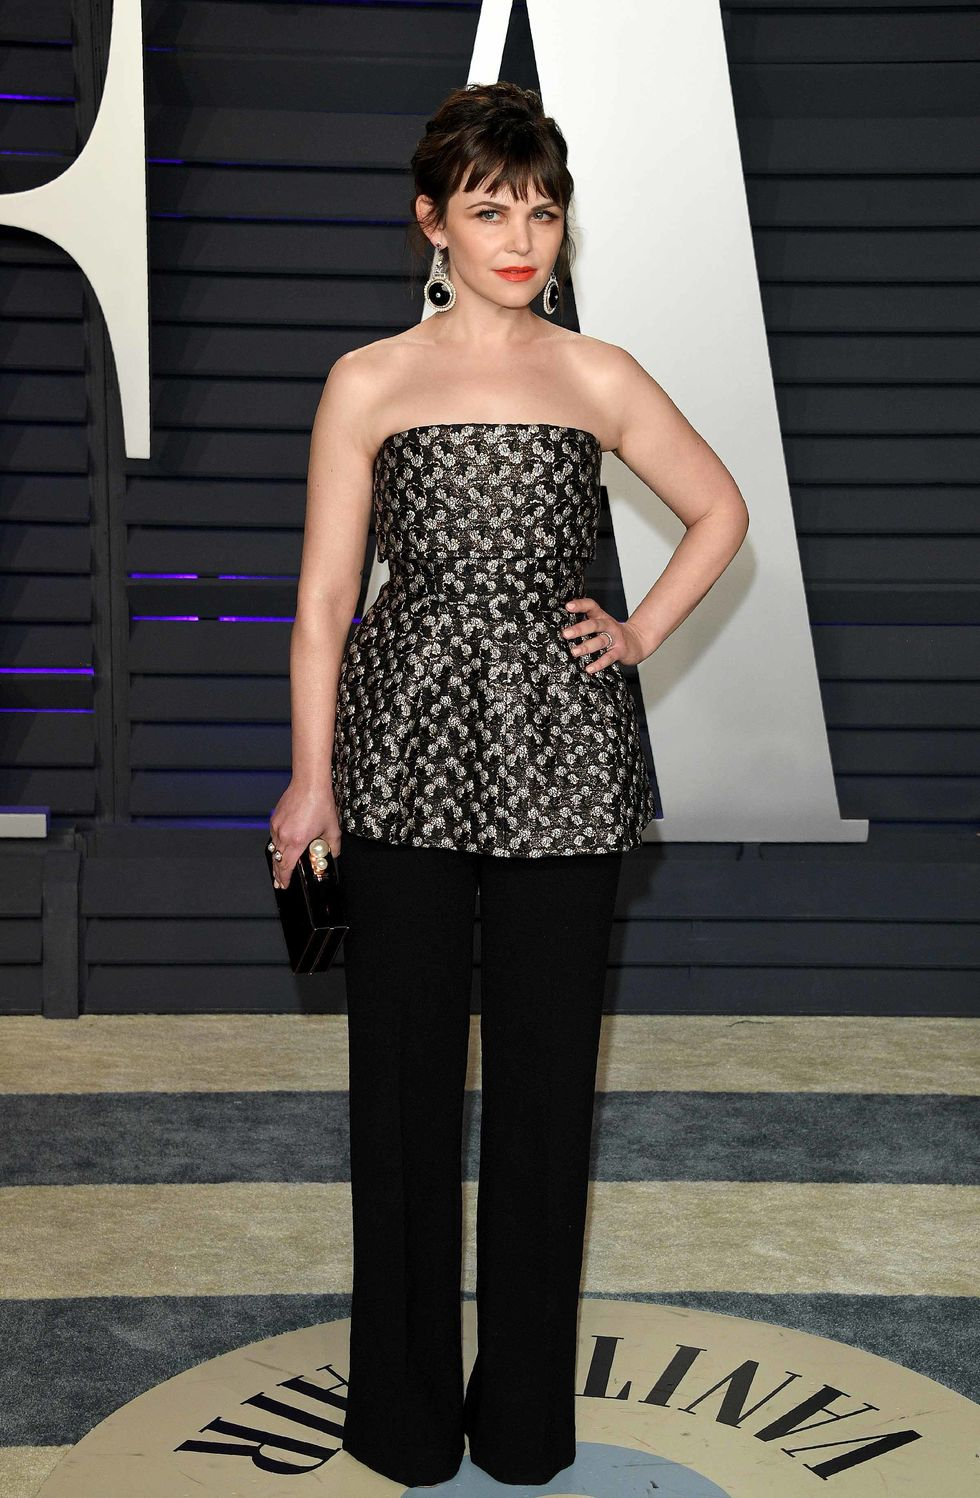 Ginnifer Goodwin in a strapless top and black pants.